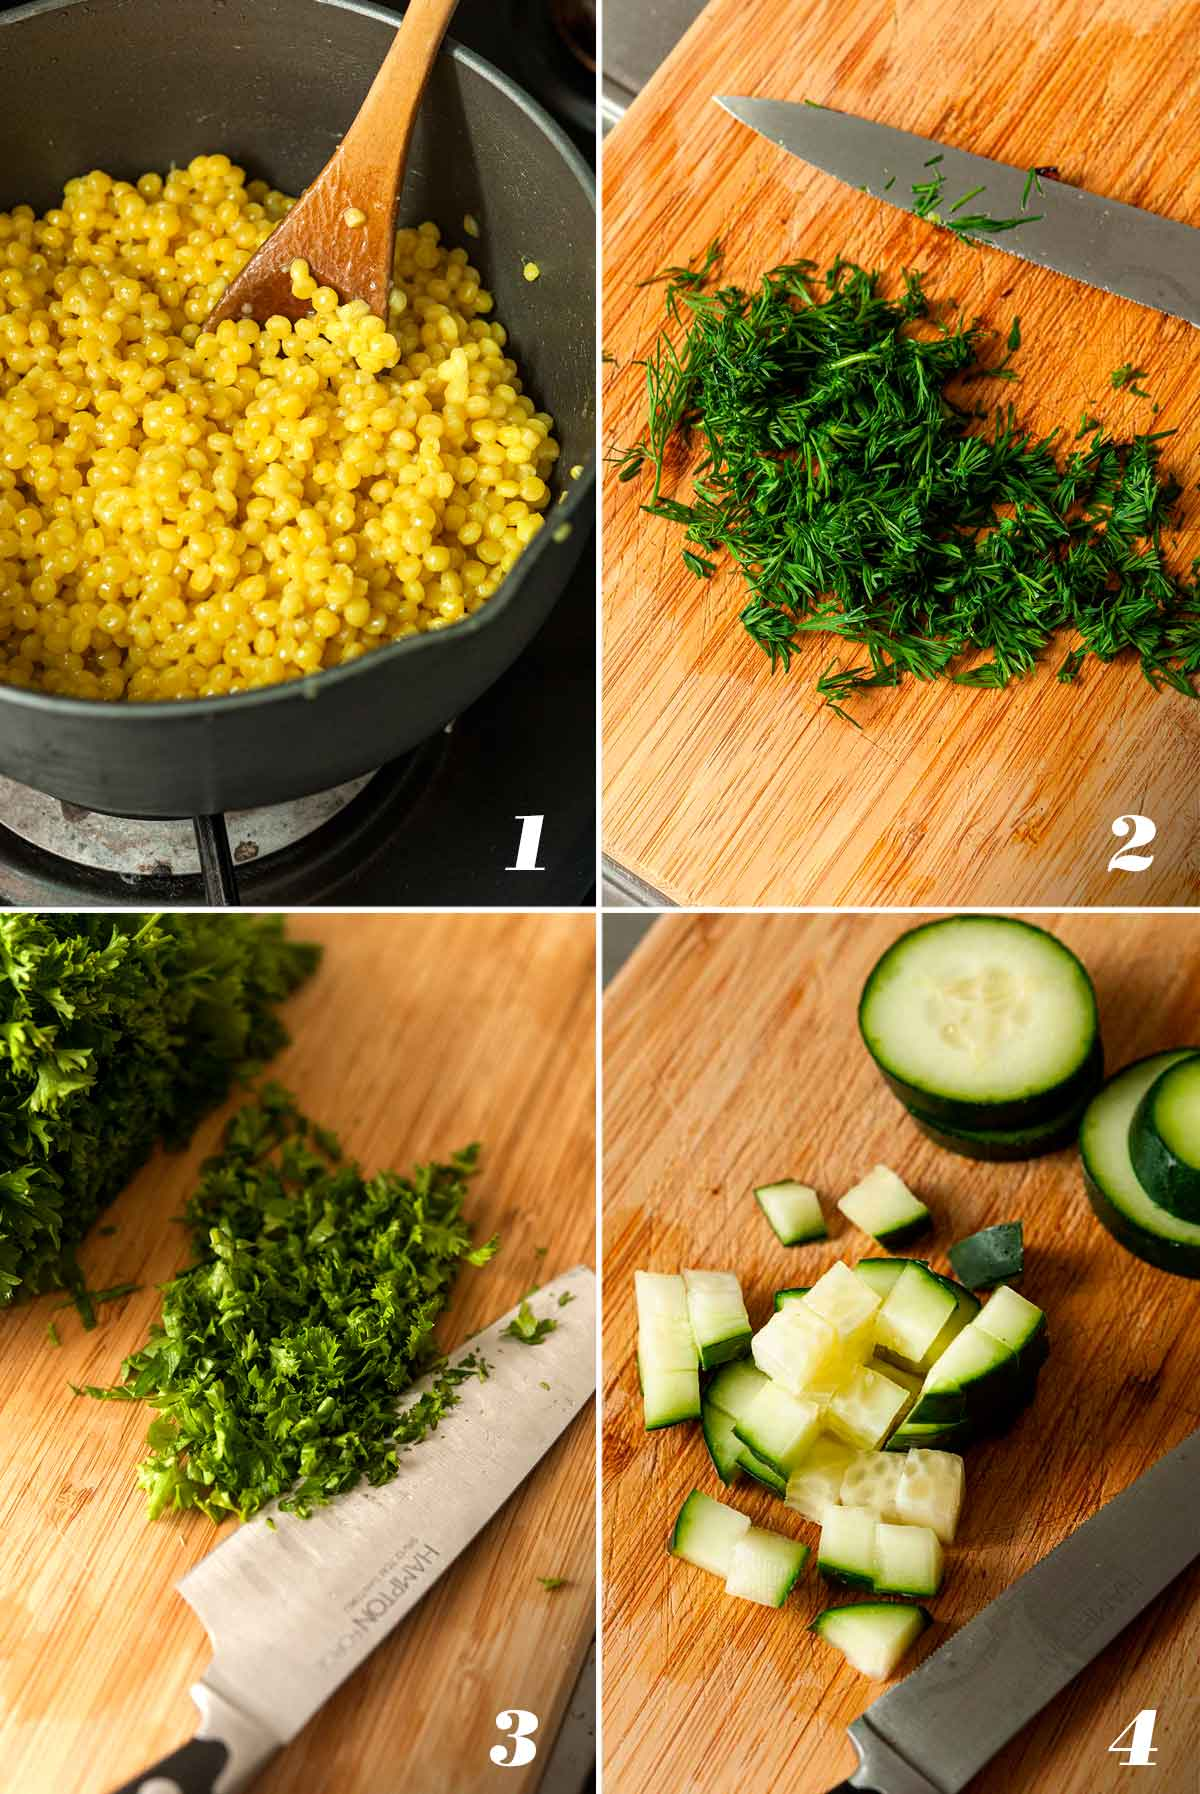 A collage of 4 images showing how to make lemon turmeric pearl couscous.